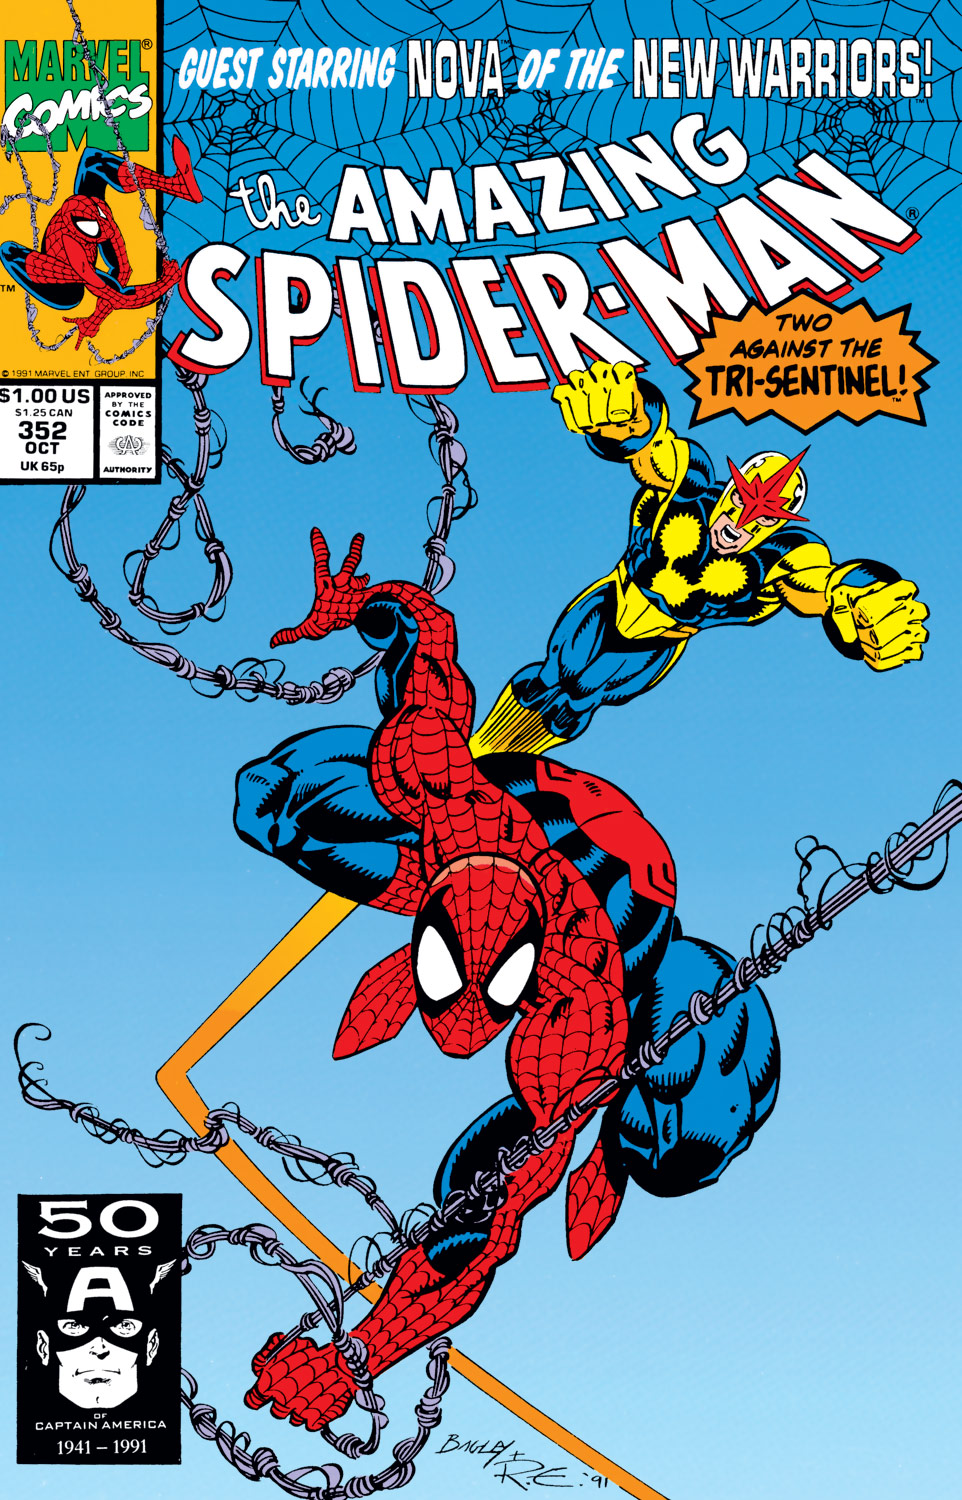 The Amazing Spider-Man (1963) #352